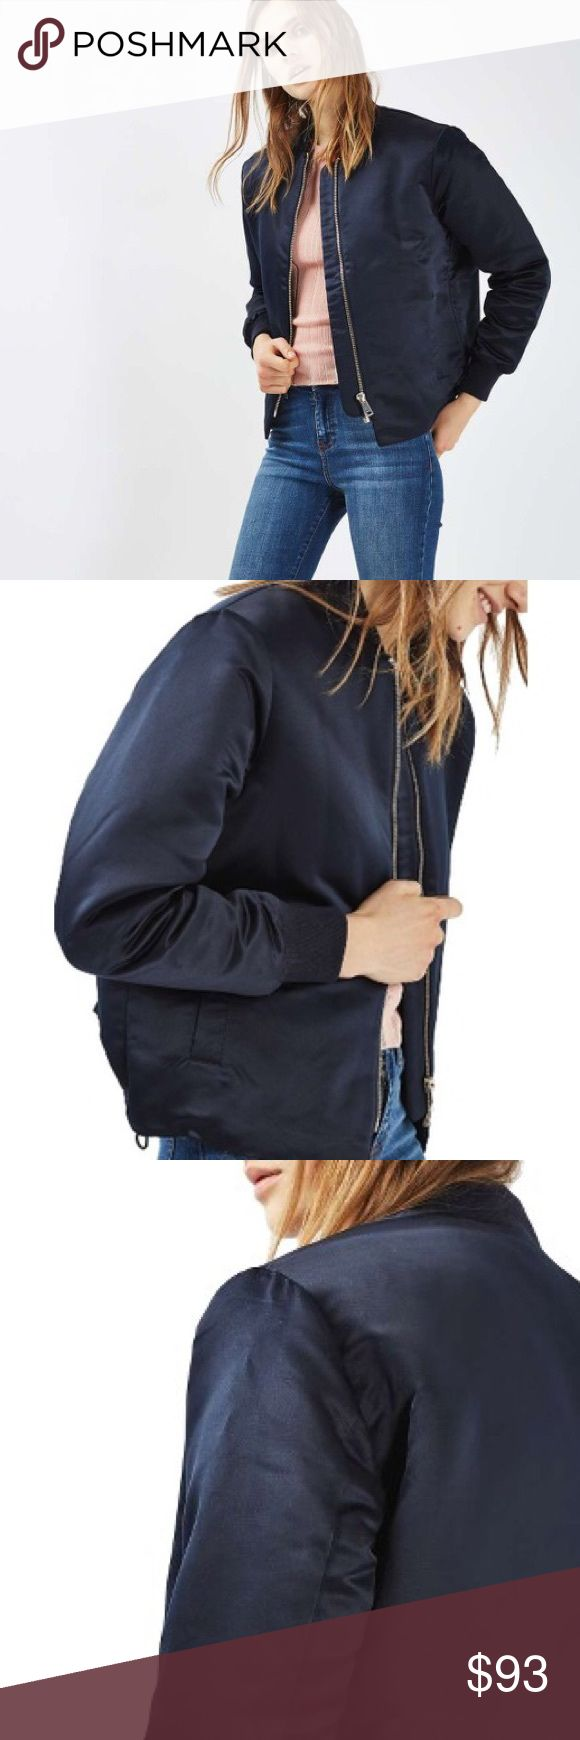 Topshop Sven Bomber Jacket Brand new with tags, shiny fully lined, navy jacket. I love offers! Topshop Jackets & Coats Puffers